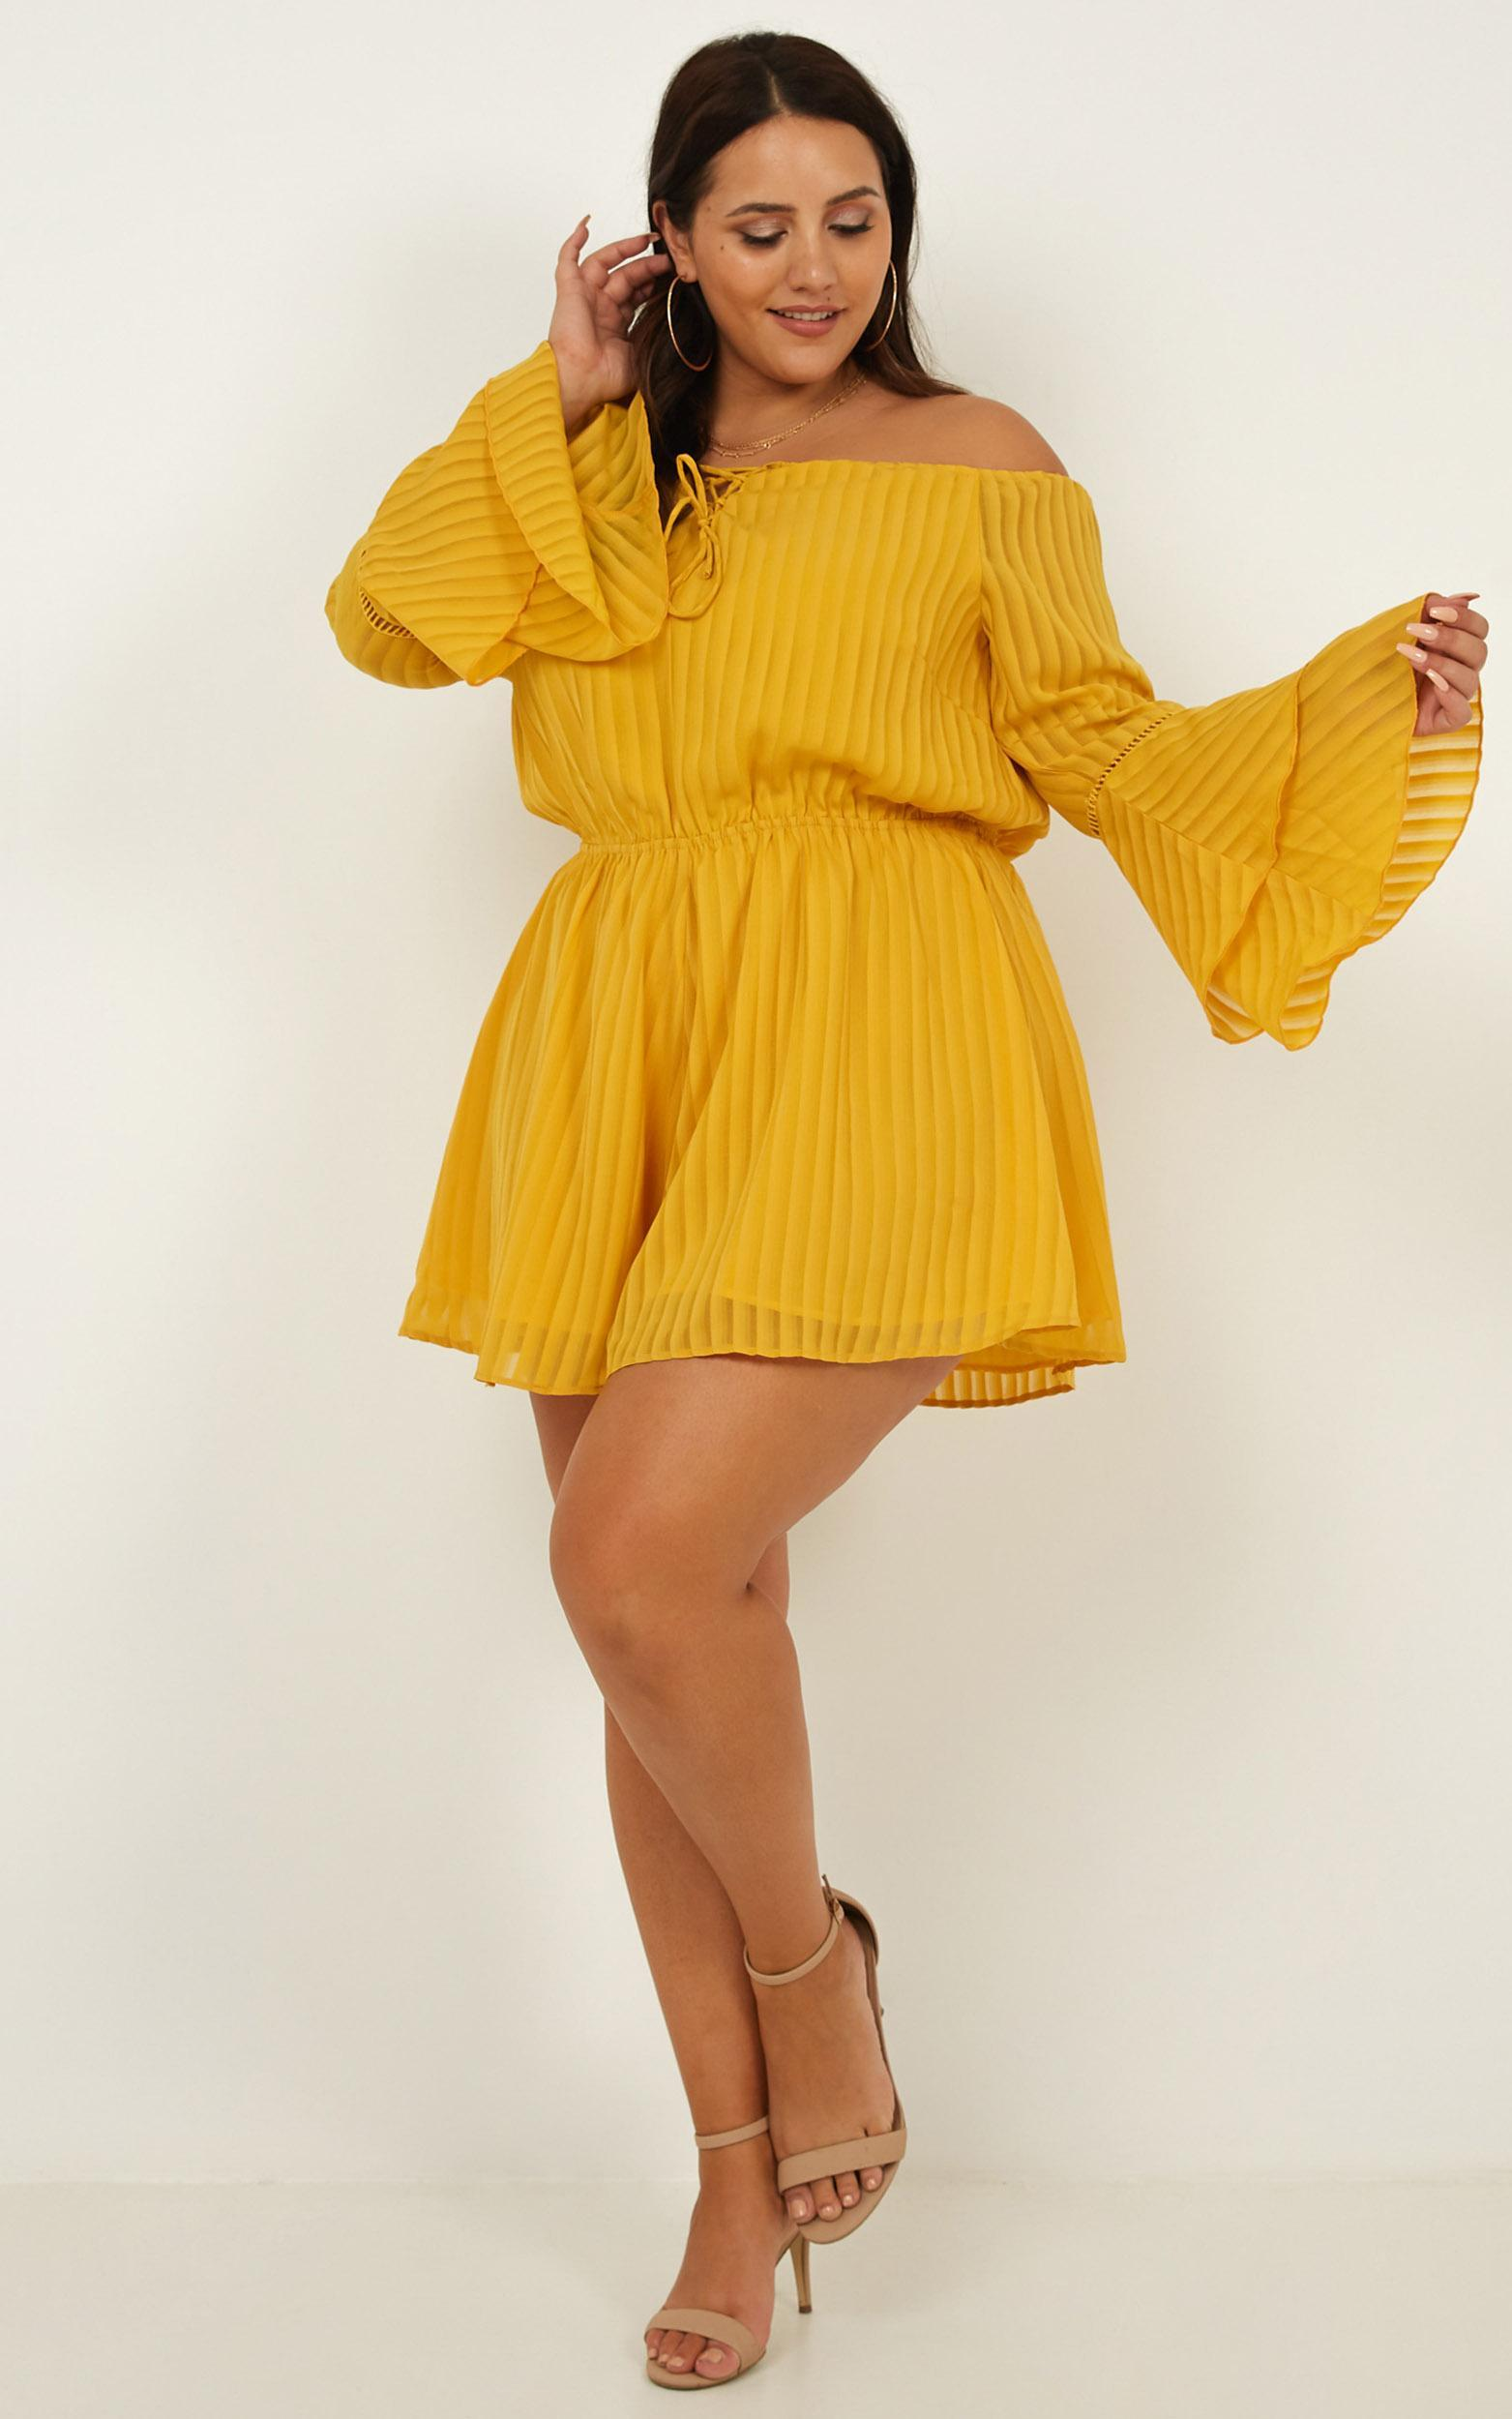 Cupids Arrow Playsuit in mustard - 20 (XXXXL), Mustard, hi-res image number null